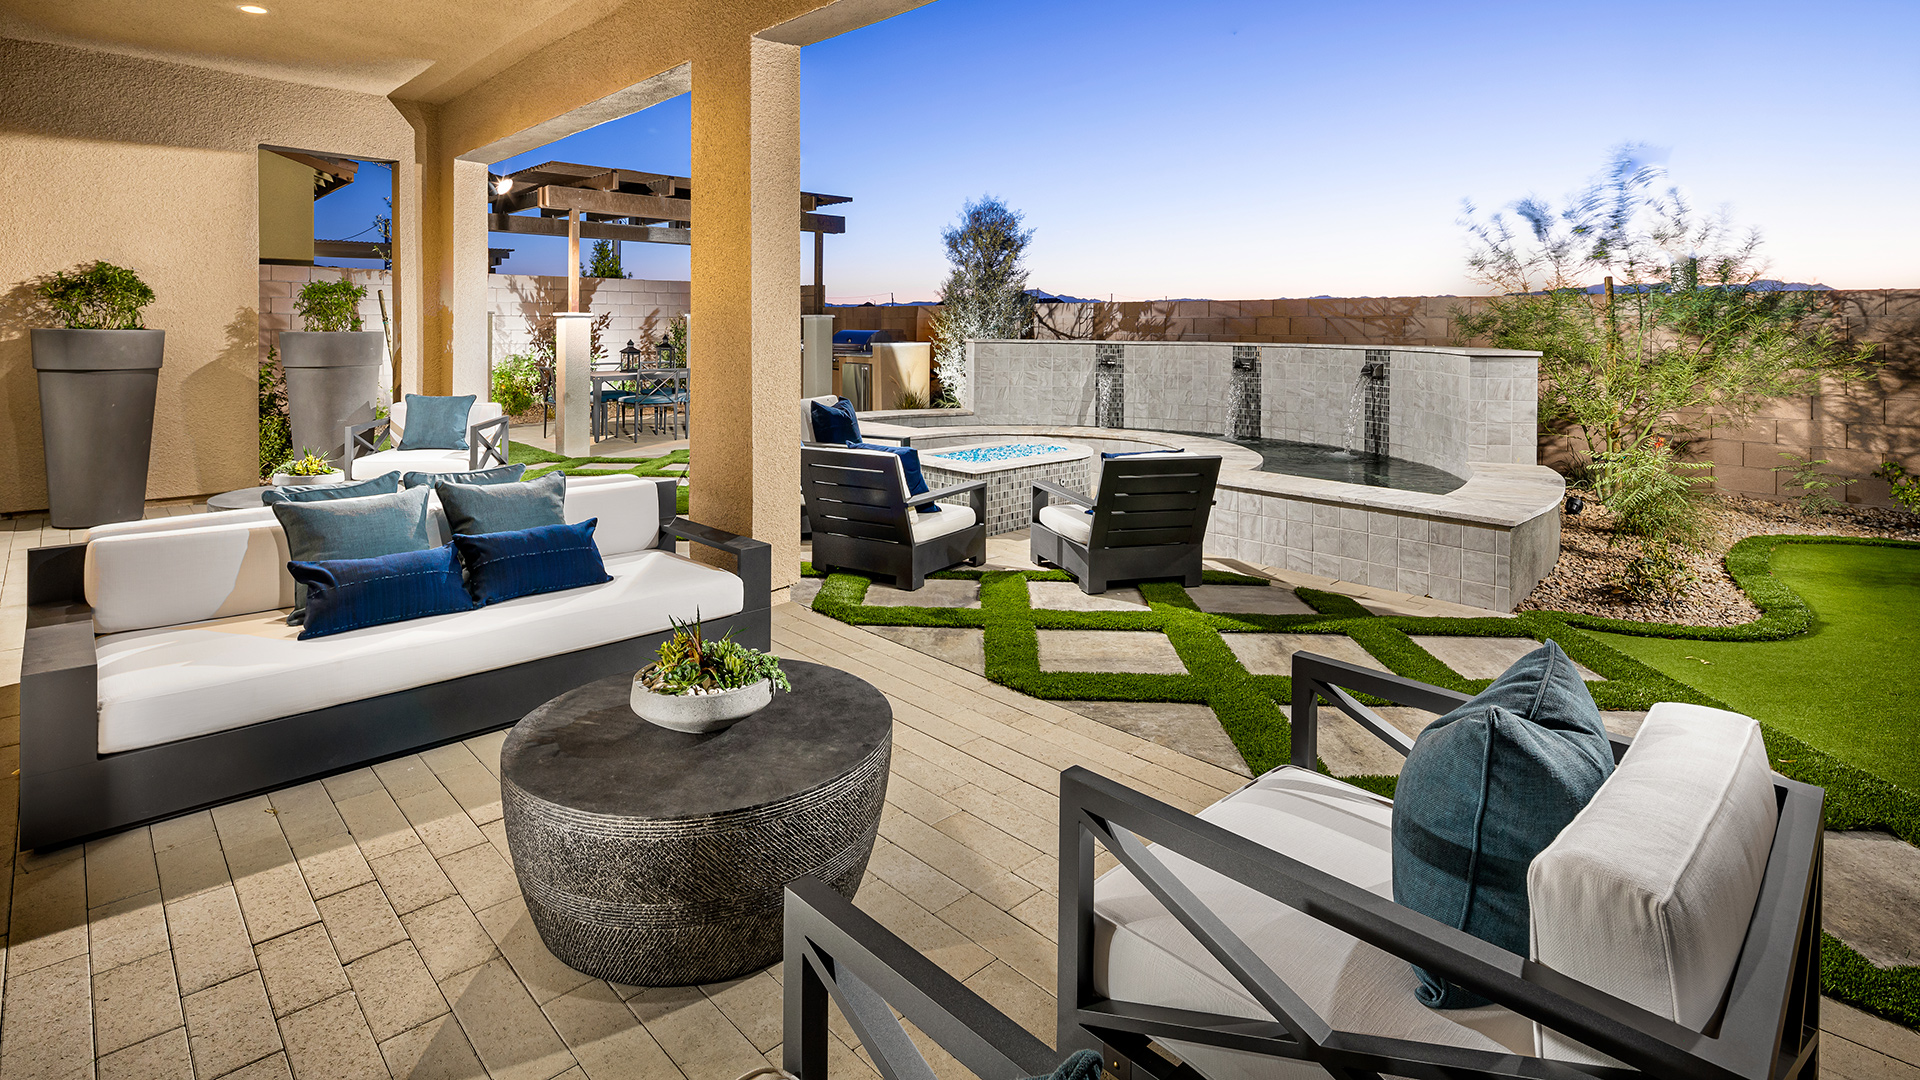 Concord at Cadence quick delivery homes - new construction quick delivery homes - buy new construction homes fast - toll brothers henderson - toll brothers concord at cadence